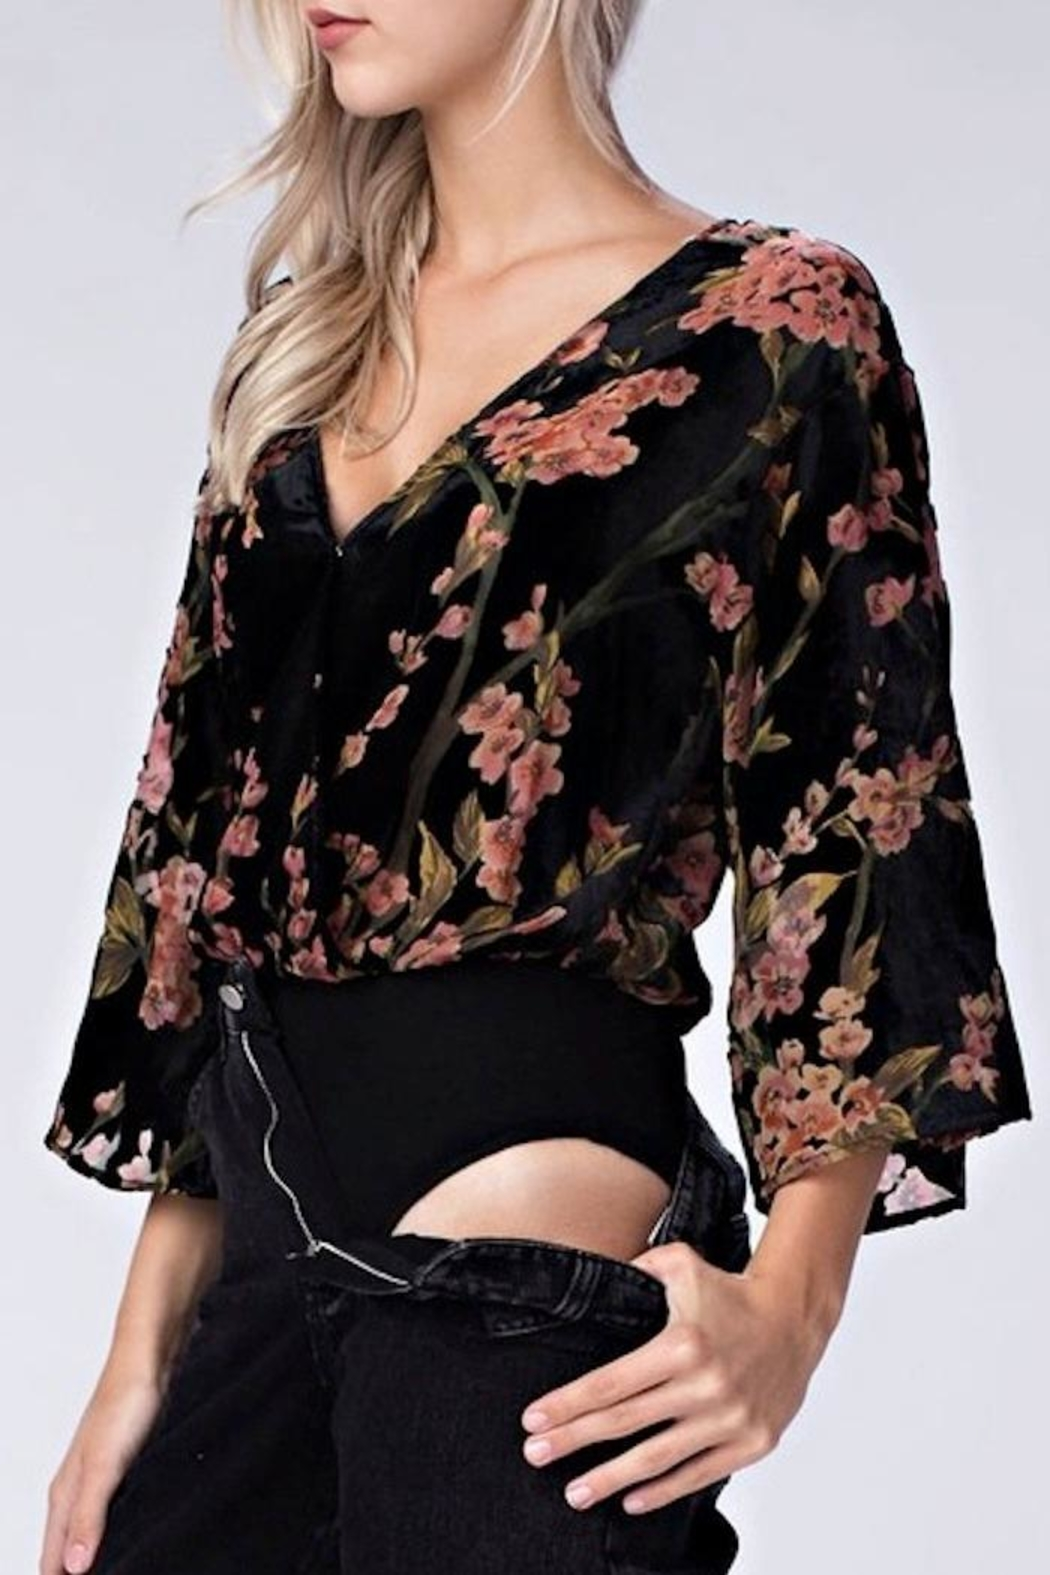 32a669d261 Honey Punch Velvet Floral Bodysuit from Louisiana by Yipsy Boutique ...